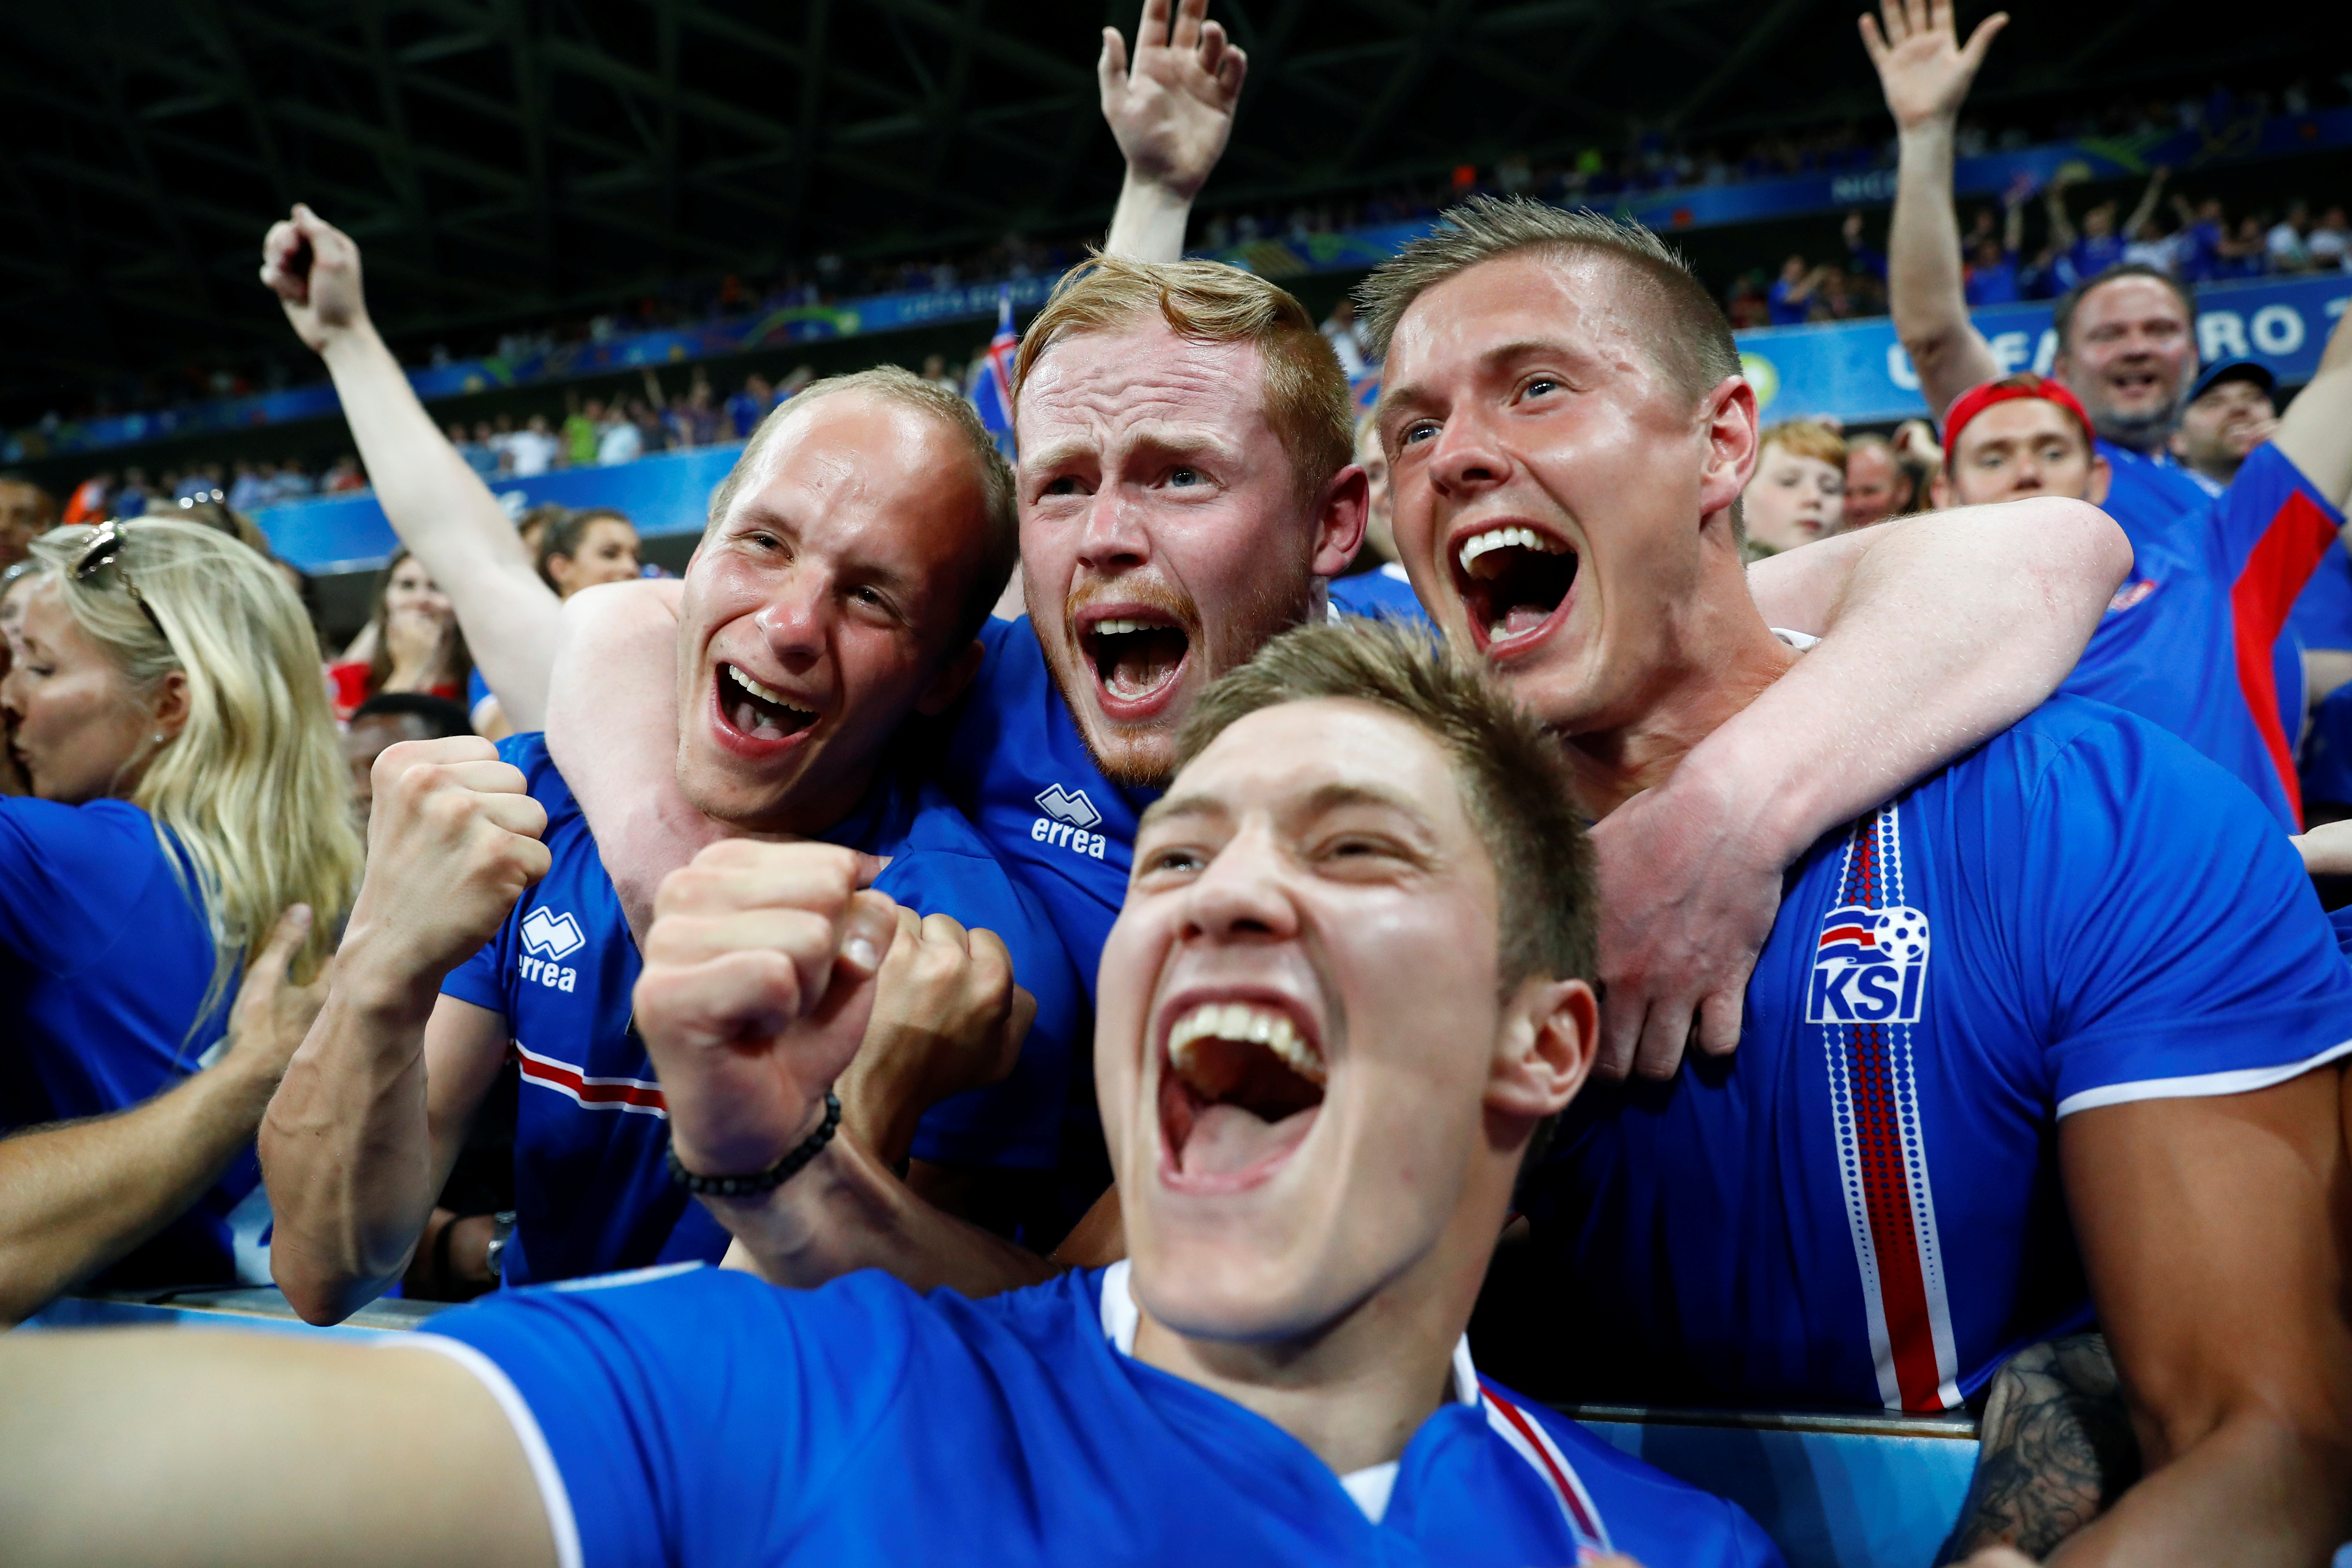 Iceland fans celebrate after their team defeats England 2-1 in a Euro 2016 game at the Stade de Nice, in Nice, France,  on June 27 2016